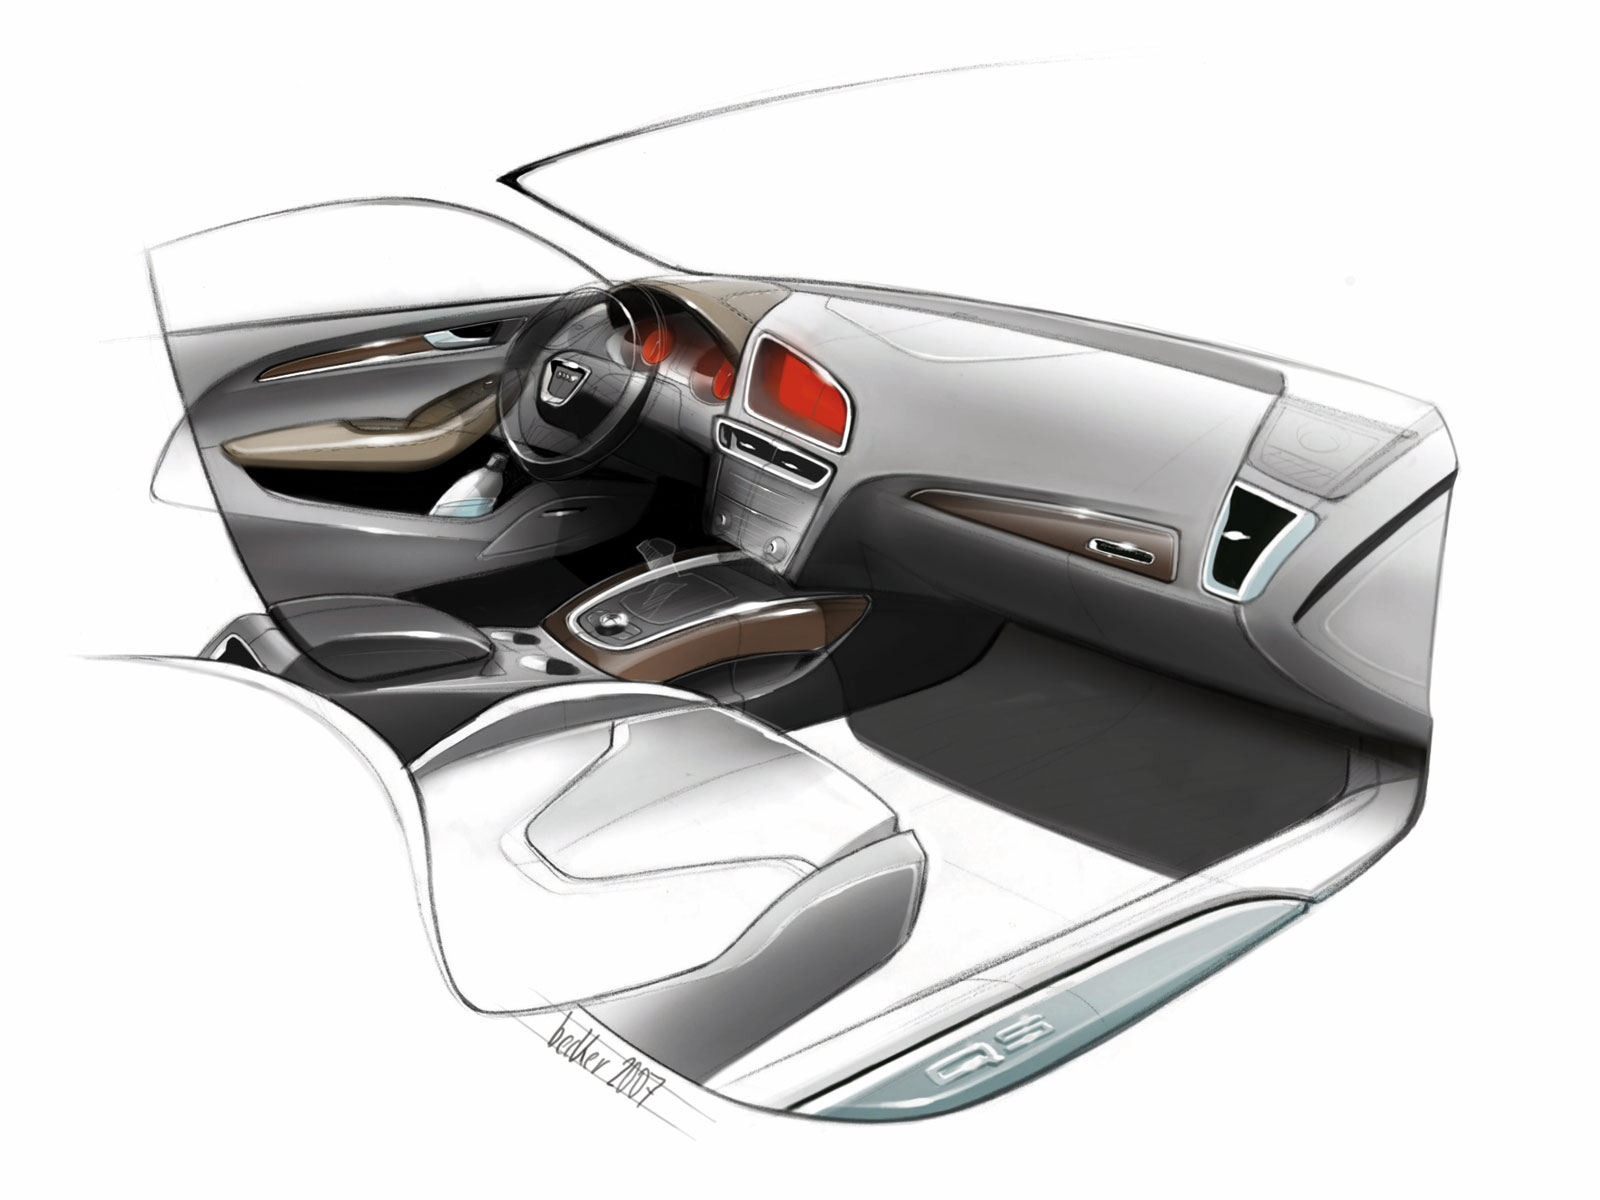 Interior design ideas automotive interior designs - Car interior design ideas ...